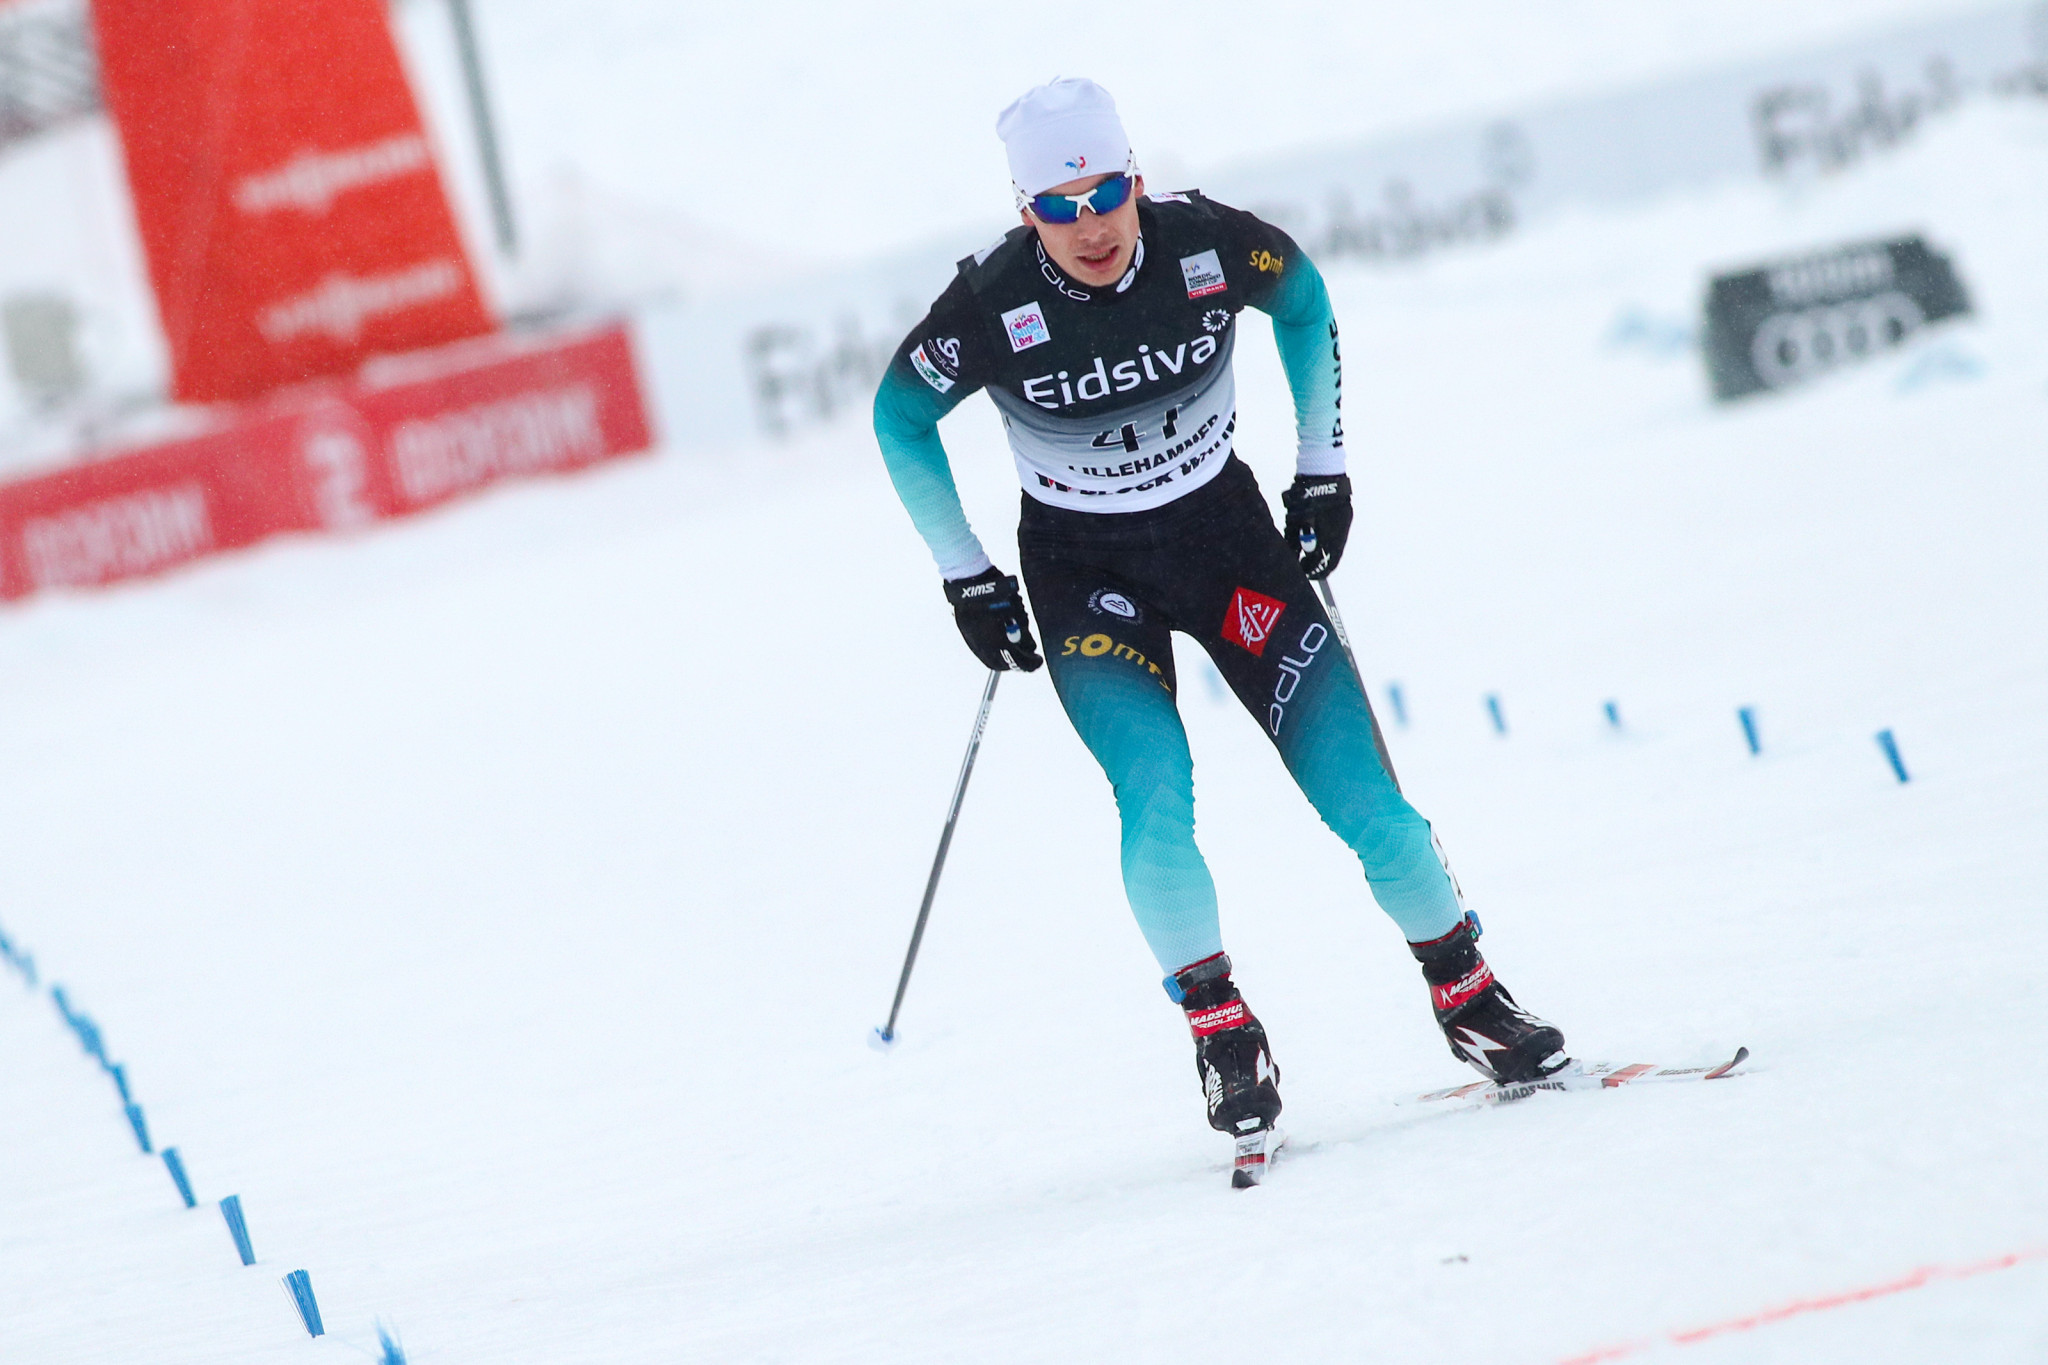 Vaxelaire and Schnurr announce retirement from Nordic combined